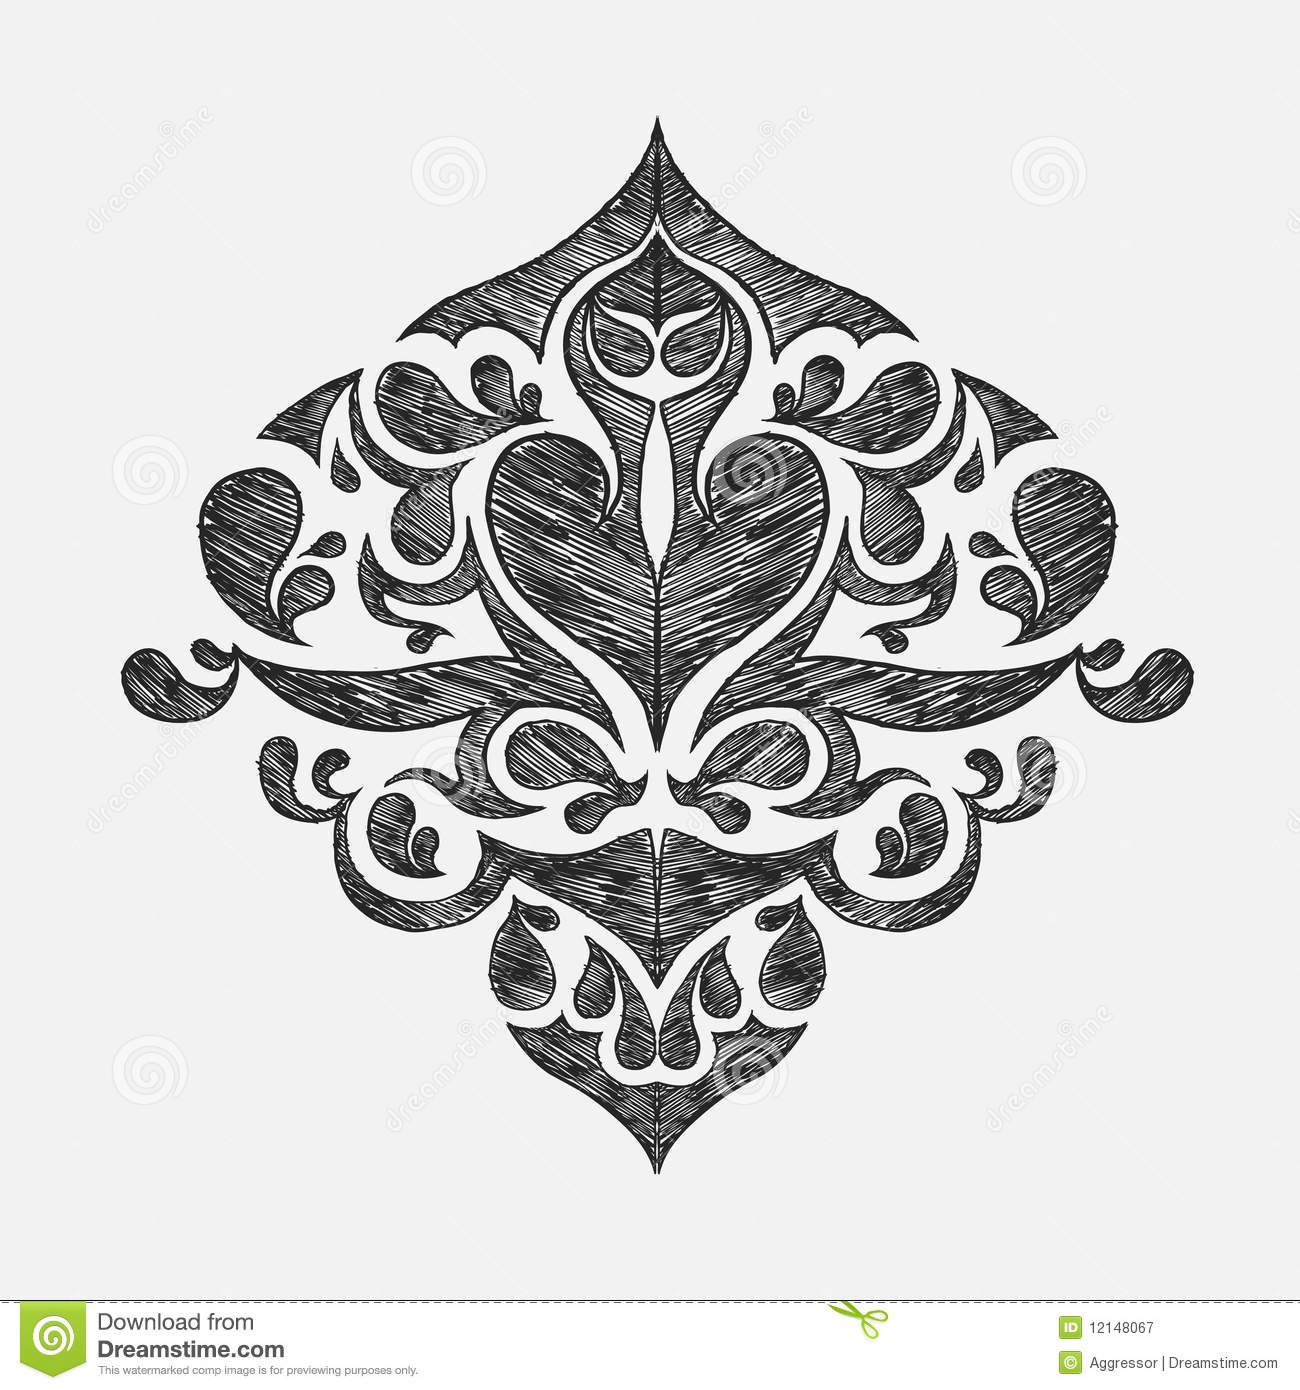 Hand Drawn Floral Ornament Royalty Free Stock Photography